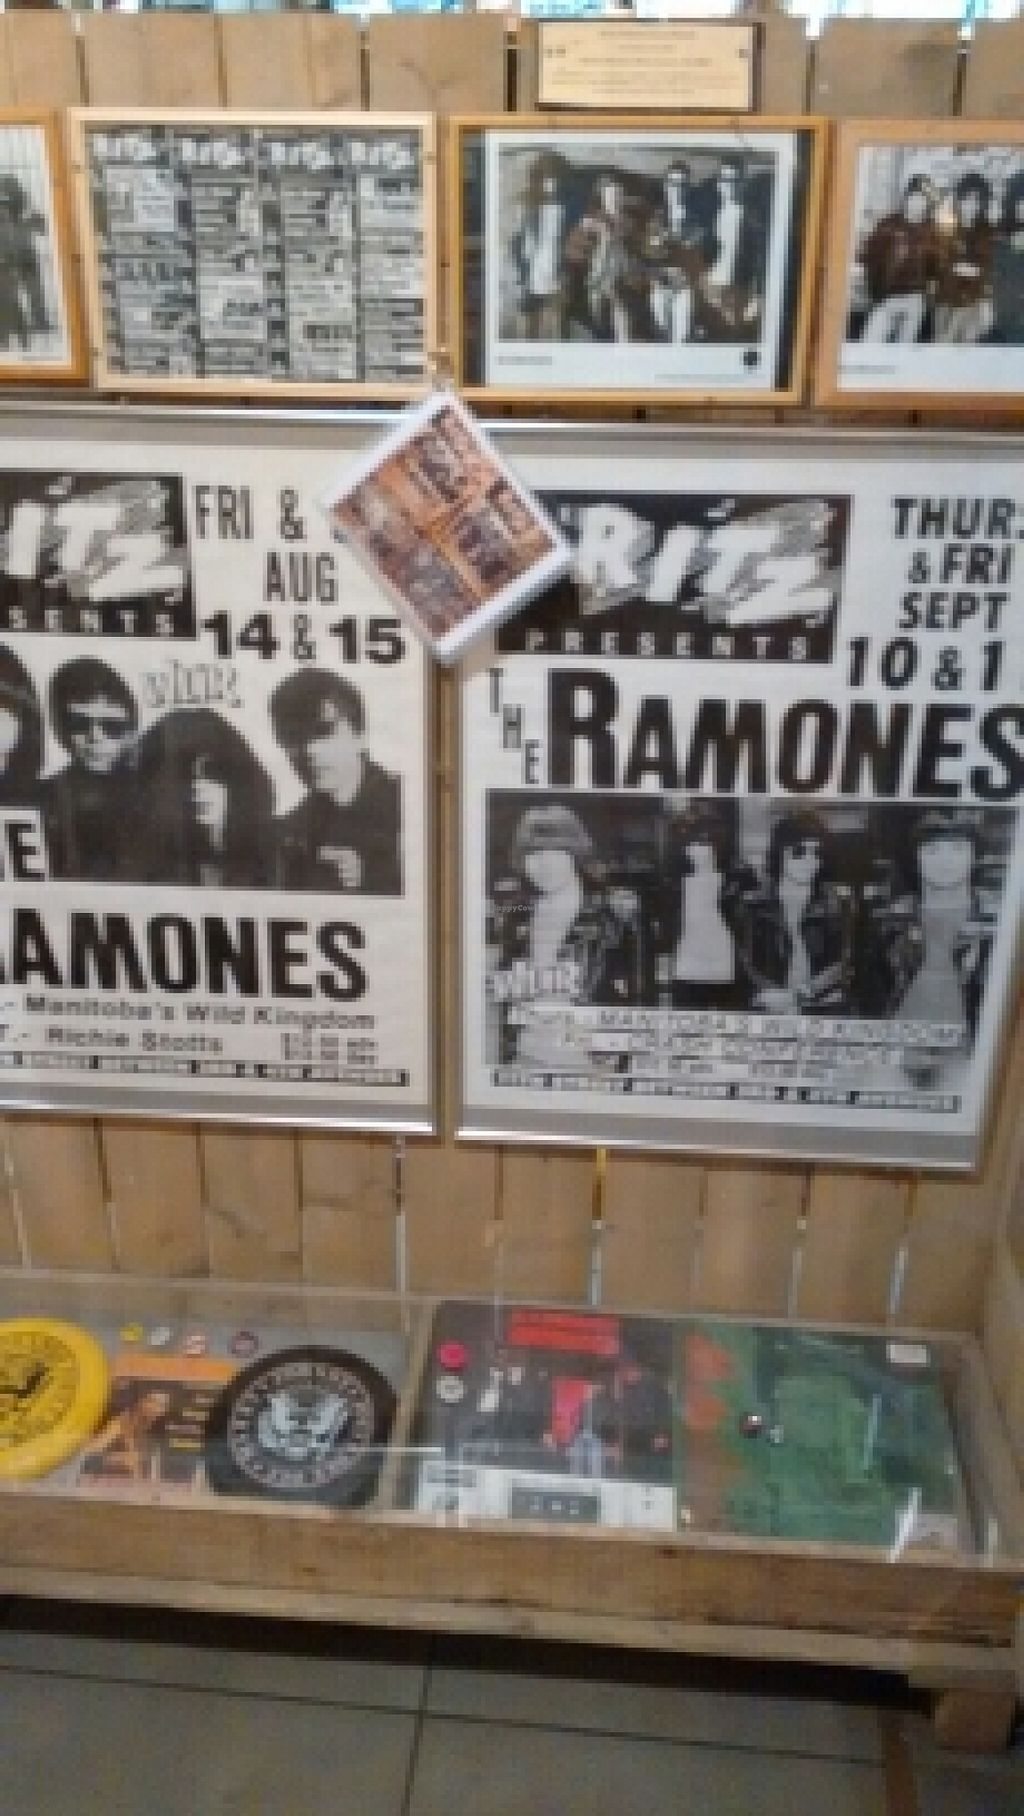 """Photo of Ramones Museum Berlin  by <a href=""""/members/profile/craigmc"""">craigmc</a> <br/>hey ho <br/> April 3, 2016  - <a href='/contact/abuse/image/56423/142504'>Report</a>"""